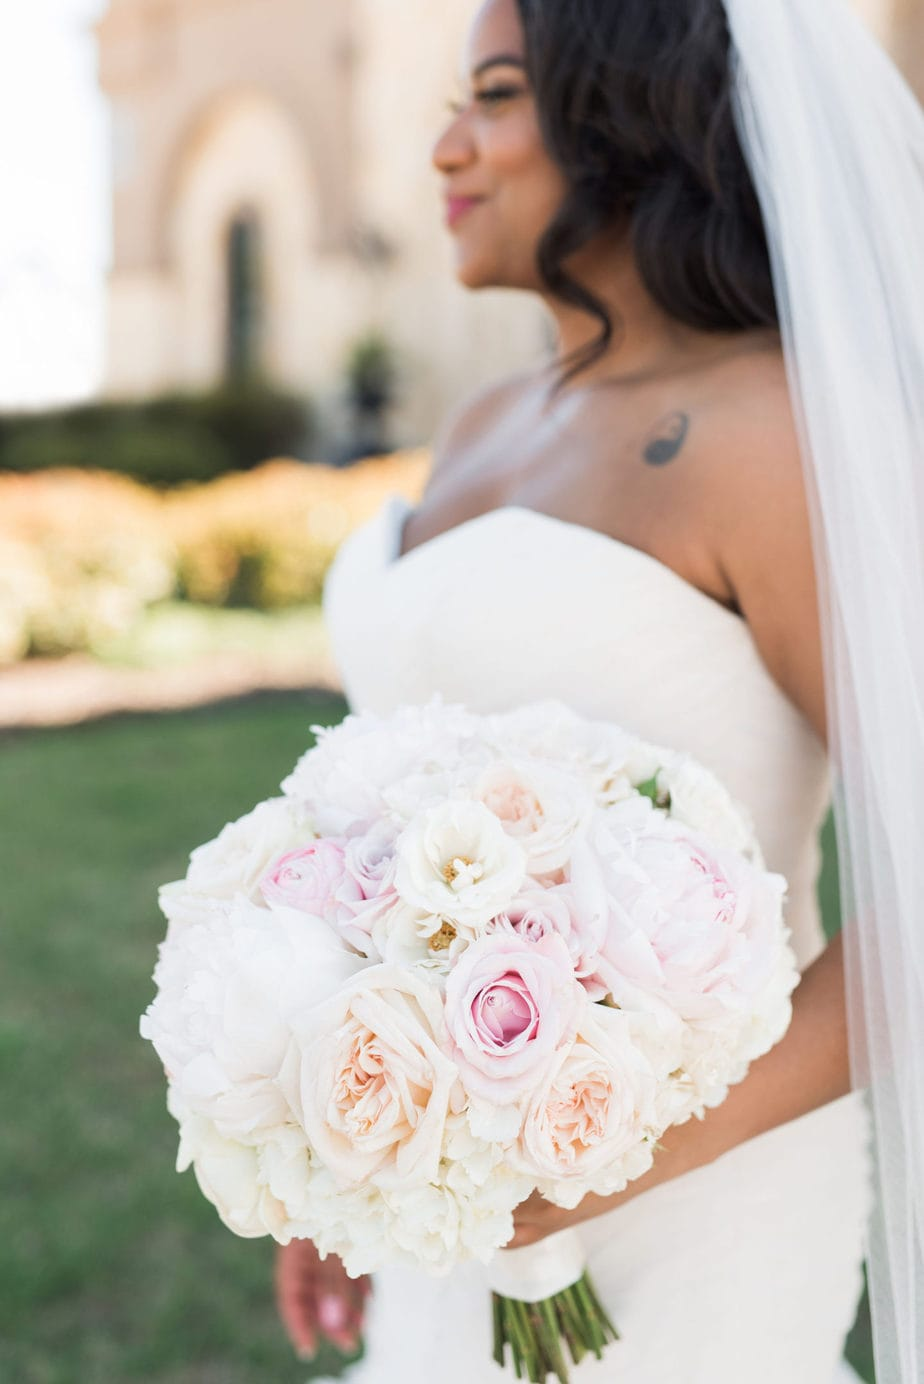 Save vs. Splurge: Lessons Learned & How to Save Money On Your Wedding